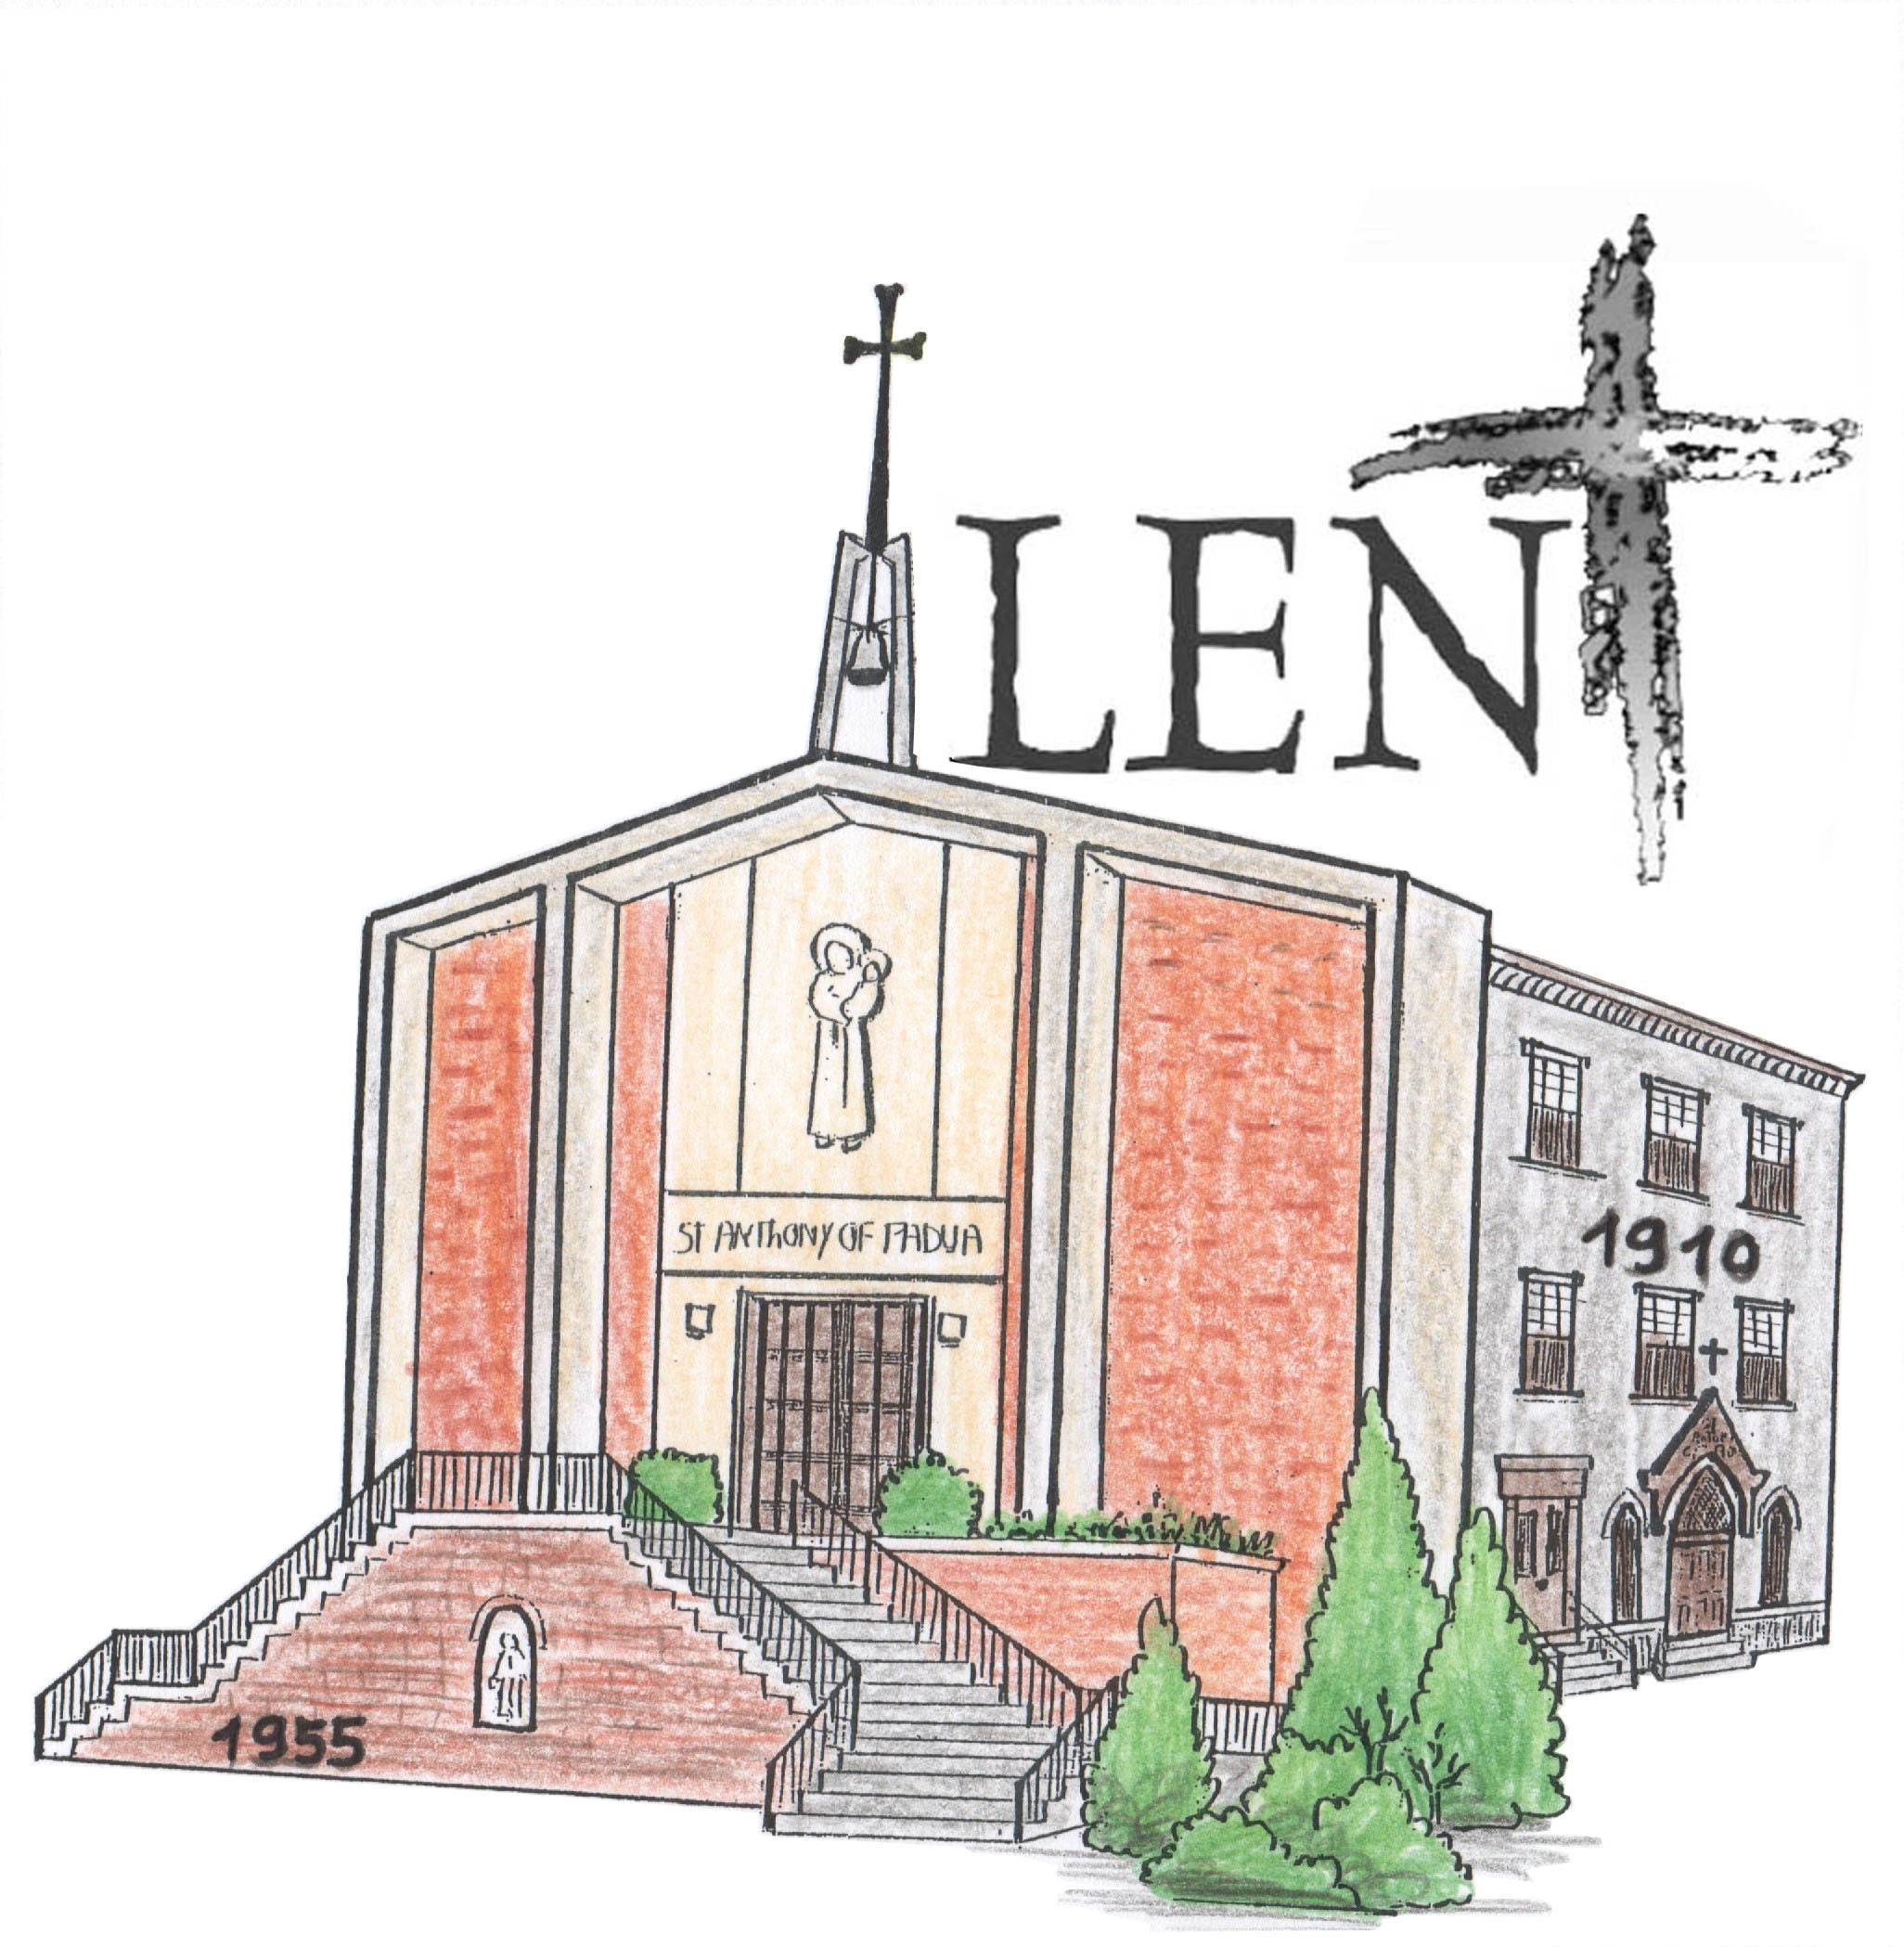 Season of Lent